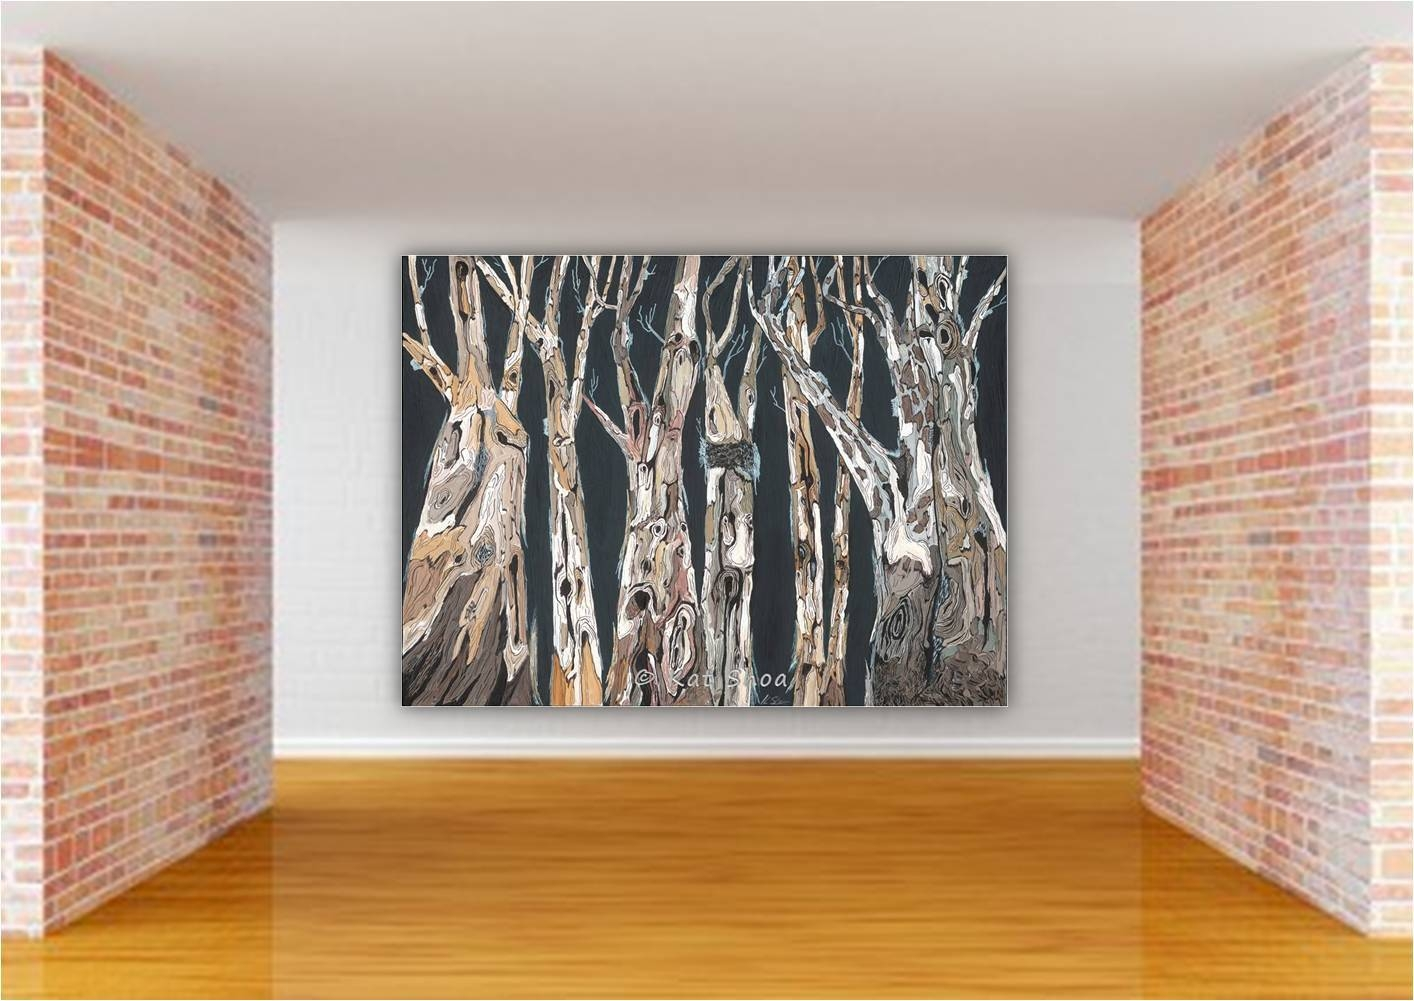 Long Wall Art Extra Large Canvas Print Gicleetree White In 2017 Huge Wall Art (View 14 of 20)